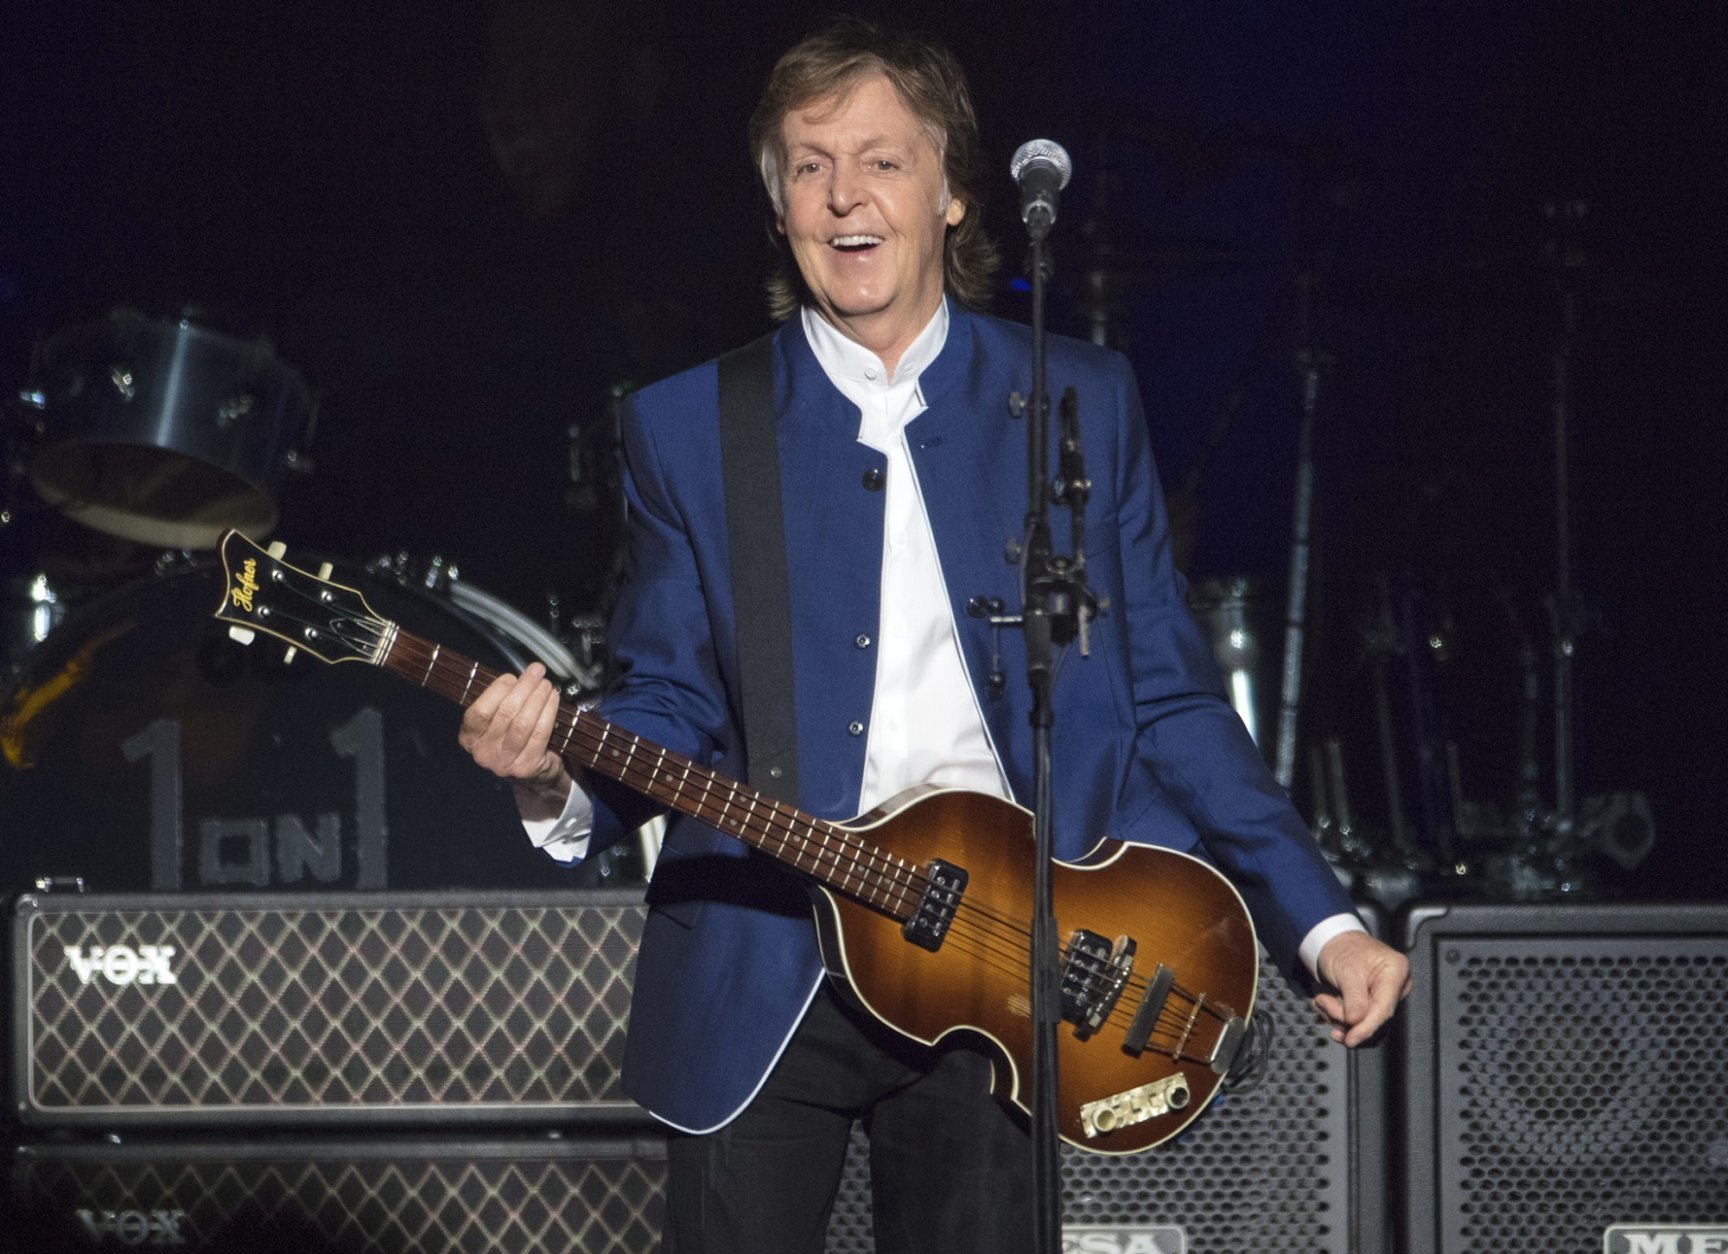 FILE - In this Monday, July 10, 2017 file photo, Sir Paul McCartney performs at Amalie Arena in Tampa, Fla. Most hosts would be quite happy to have Paul McCartney come to a shindig. Paul McCartney's Christmas message to his fans around the world: Don't be like me and eat and drink too much. The 76-year-old former Beatle tweeted his lighthearted holiday wishes Tuesday, Dec. 25, 2018 illustrated with photos from his younger days. (AP Photo/Scott Audette, file)